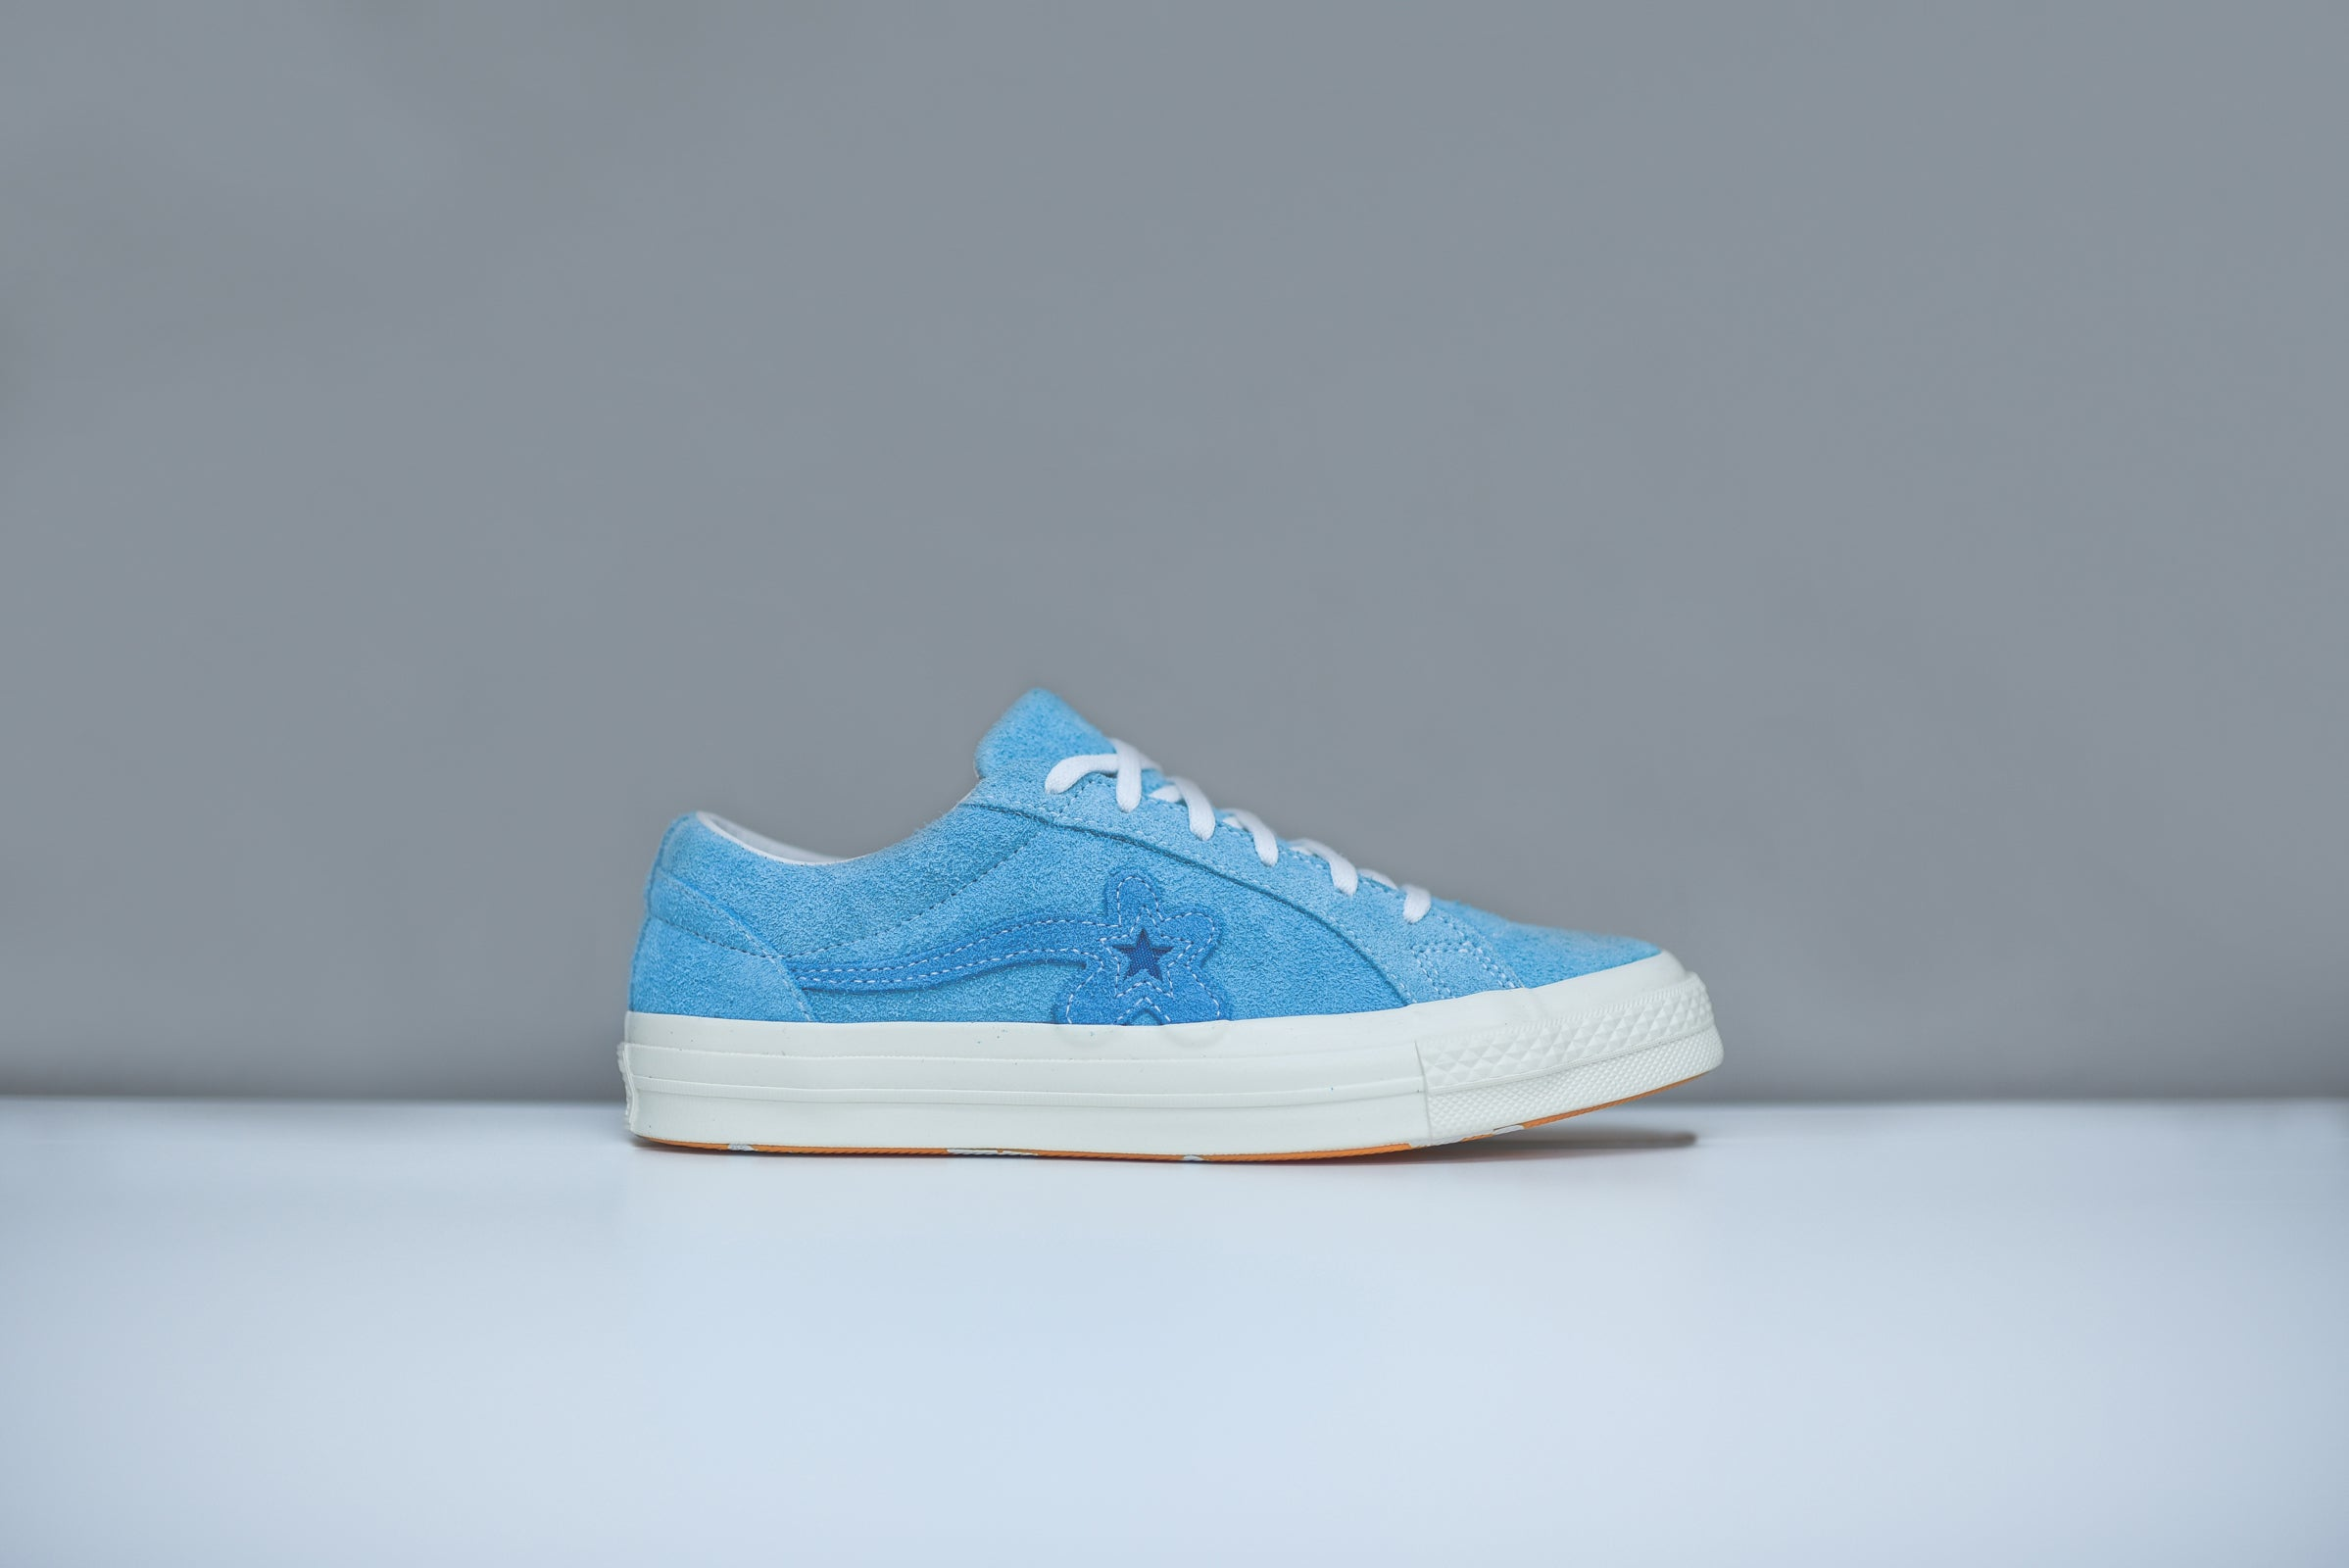 Converse x Golf Le Fleur One Star - Bachelor Blue / White